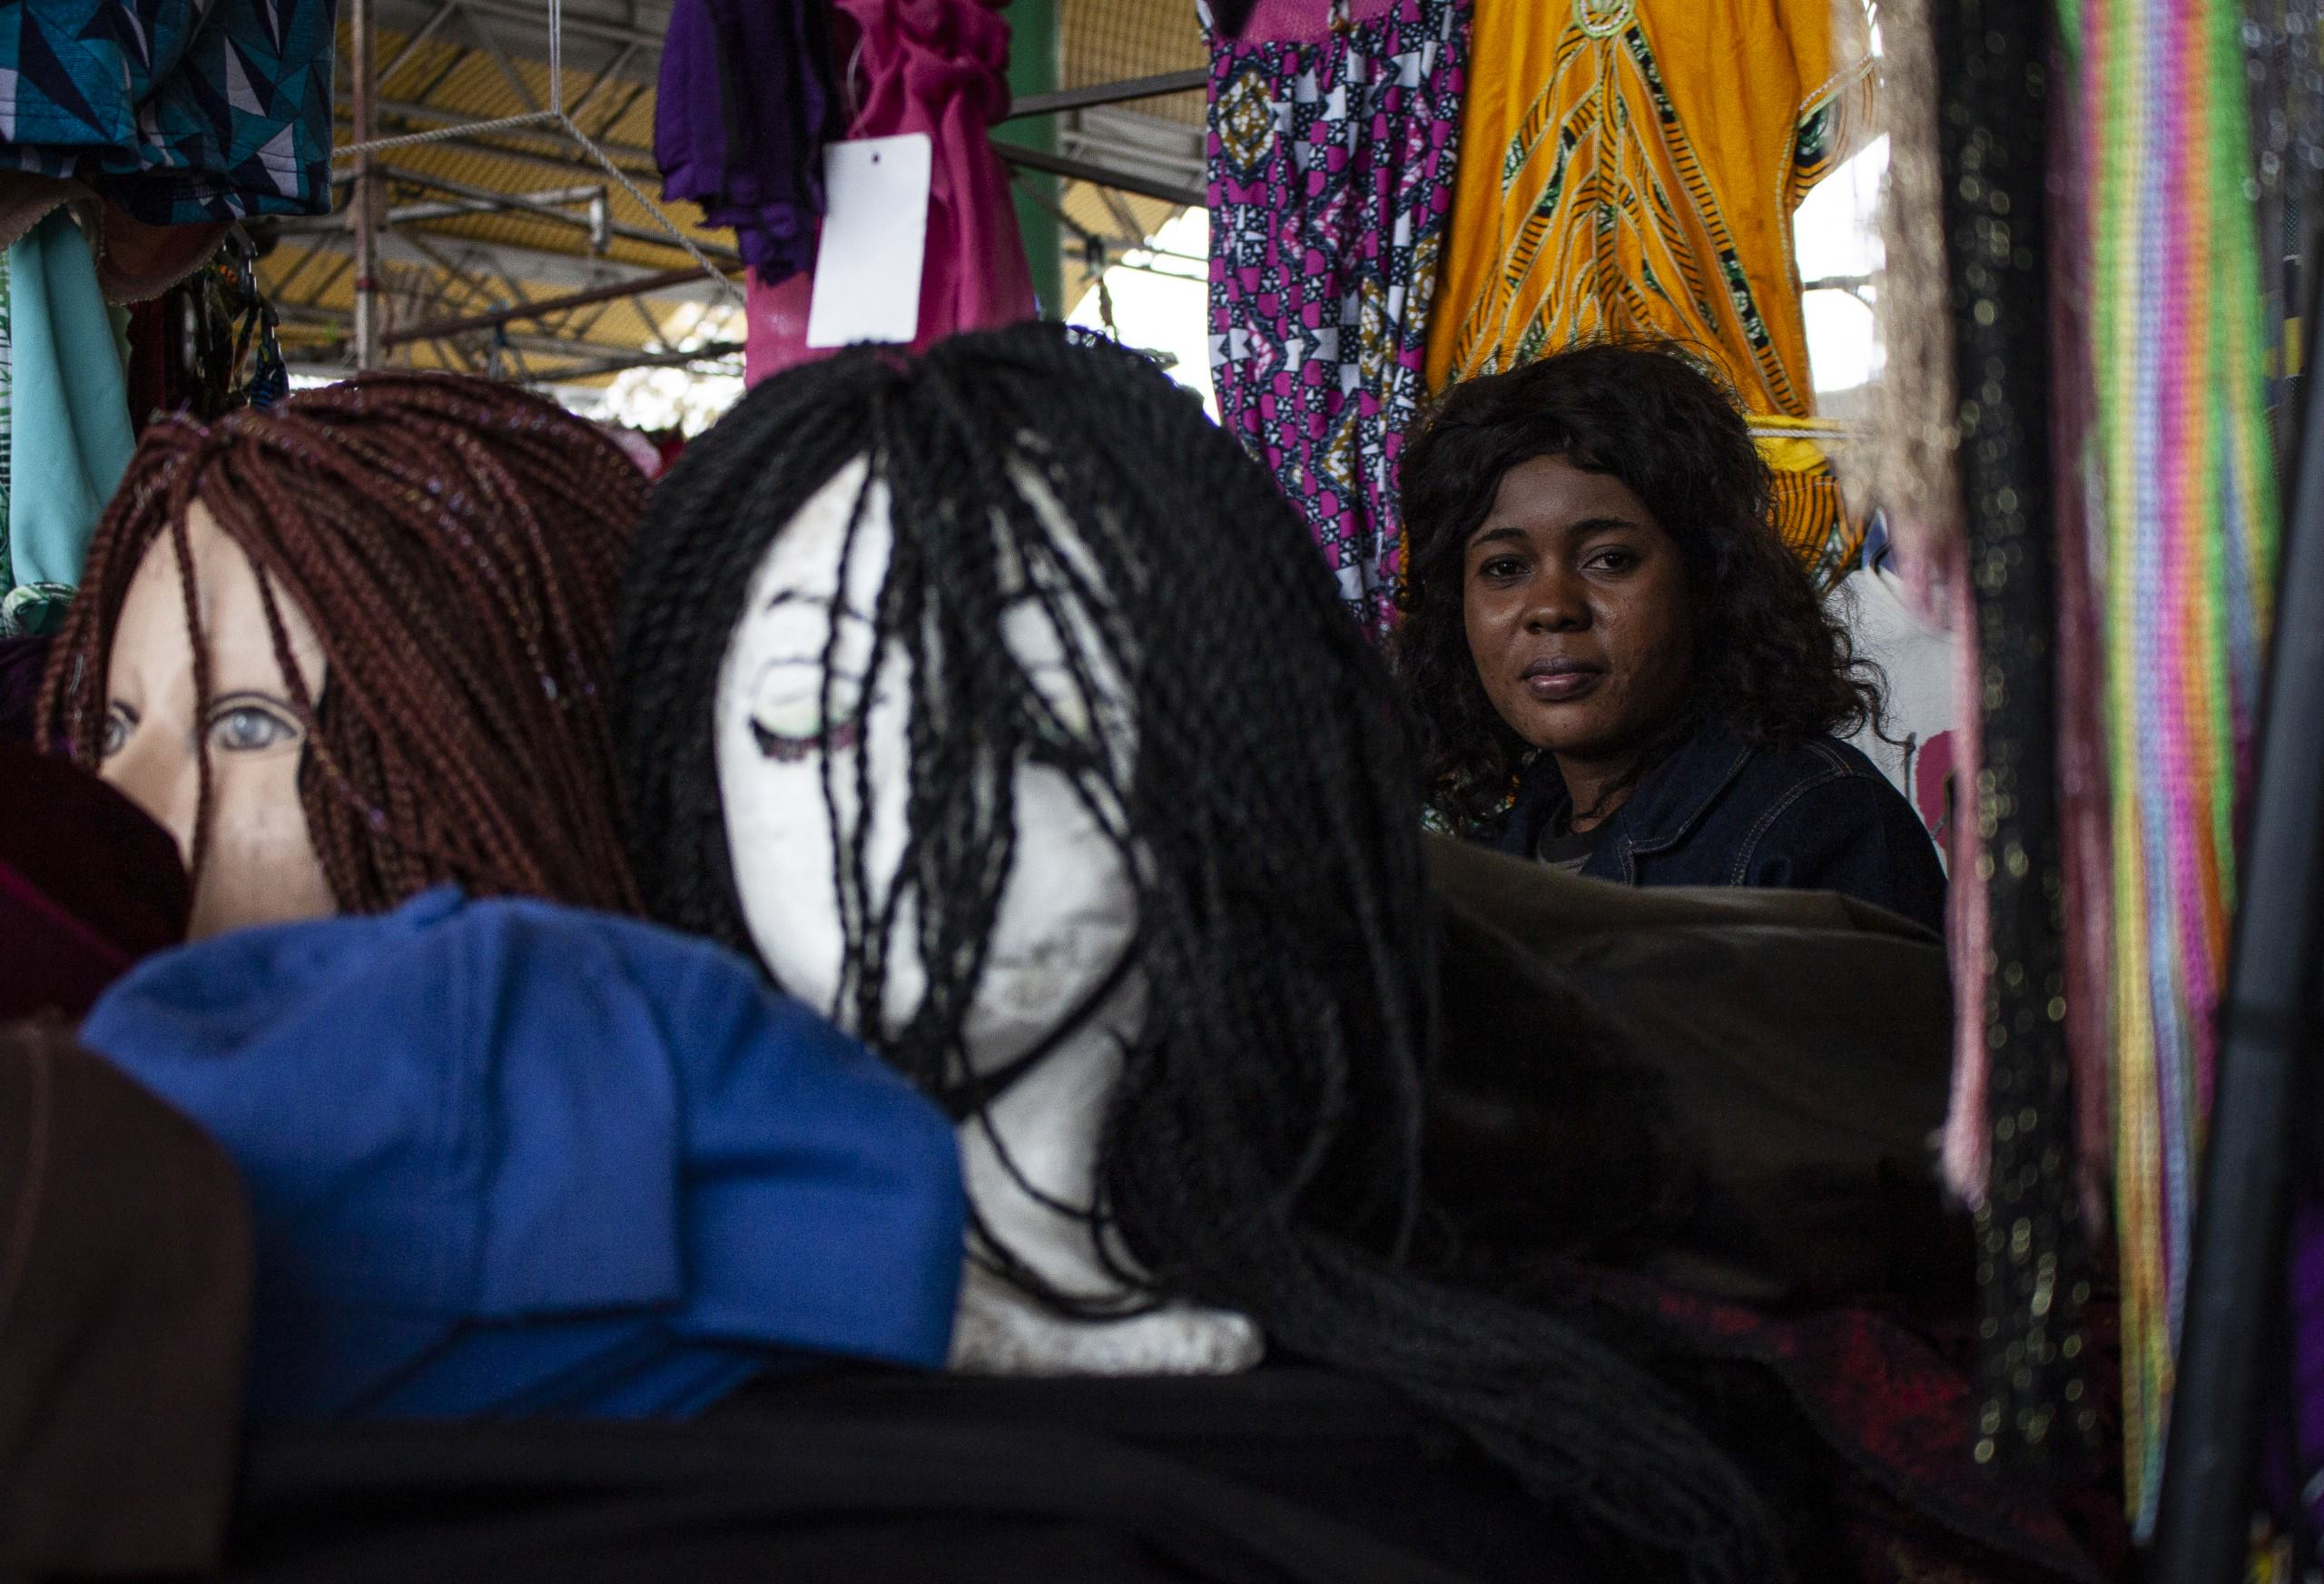 Charlene at her market stall in Bellville, Cape Town. Suggested Credit Quentin Pichon/ Scalabrini